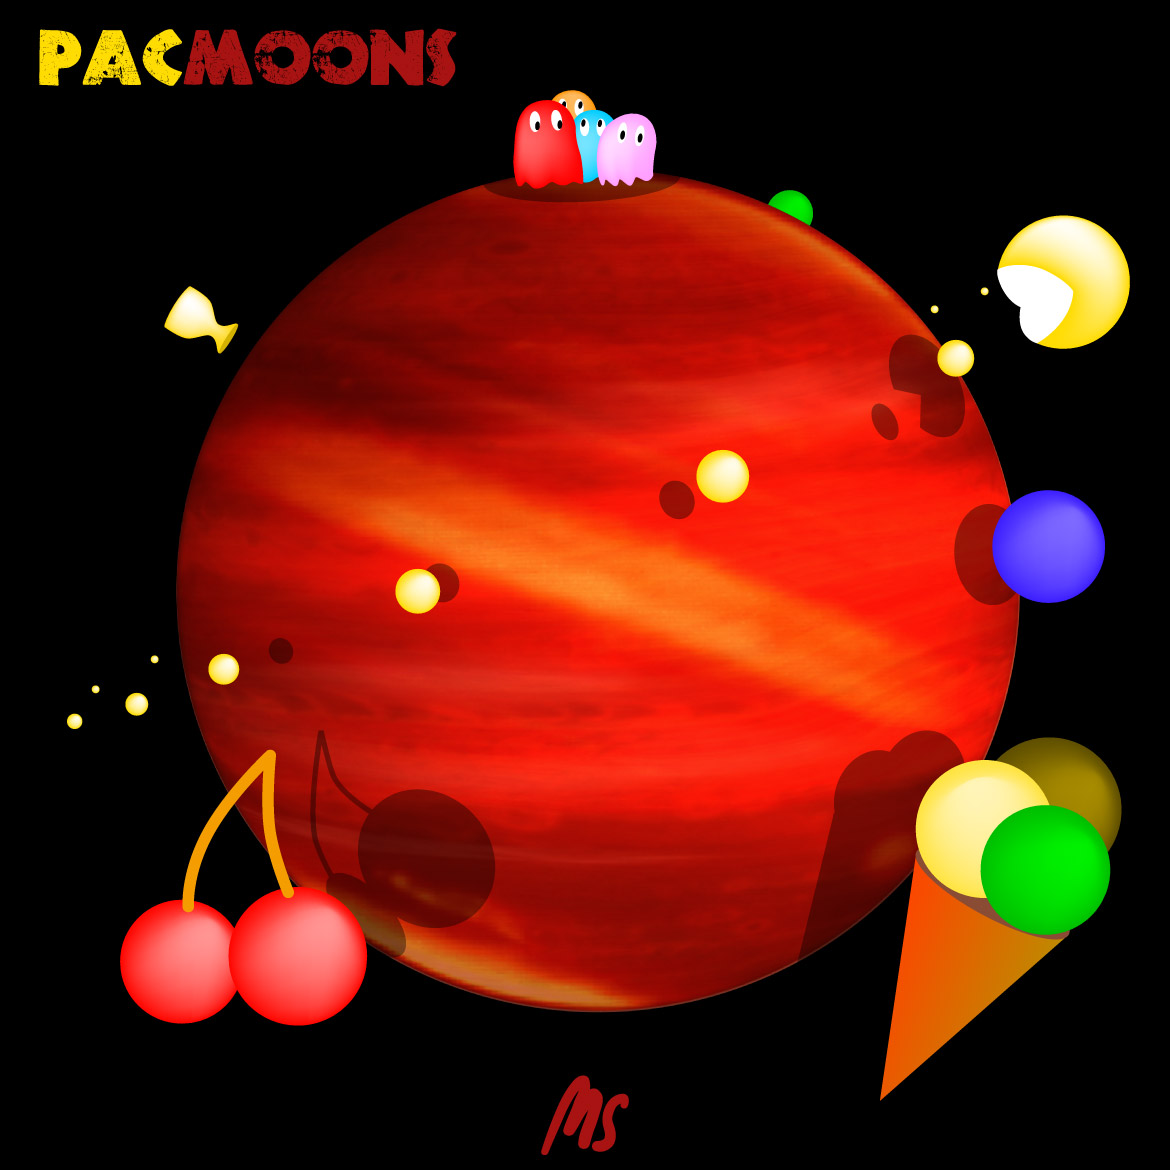 pac-moons